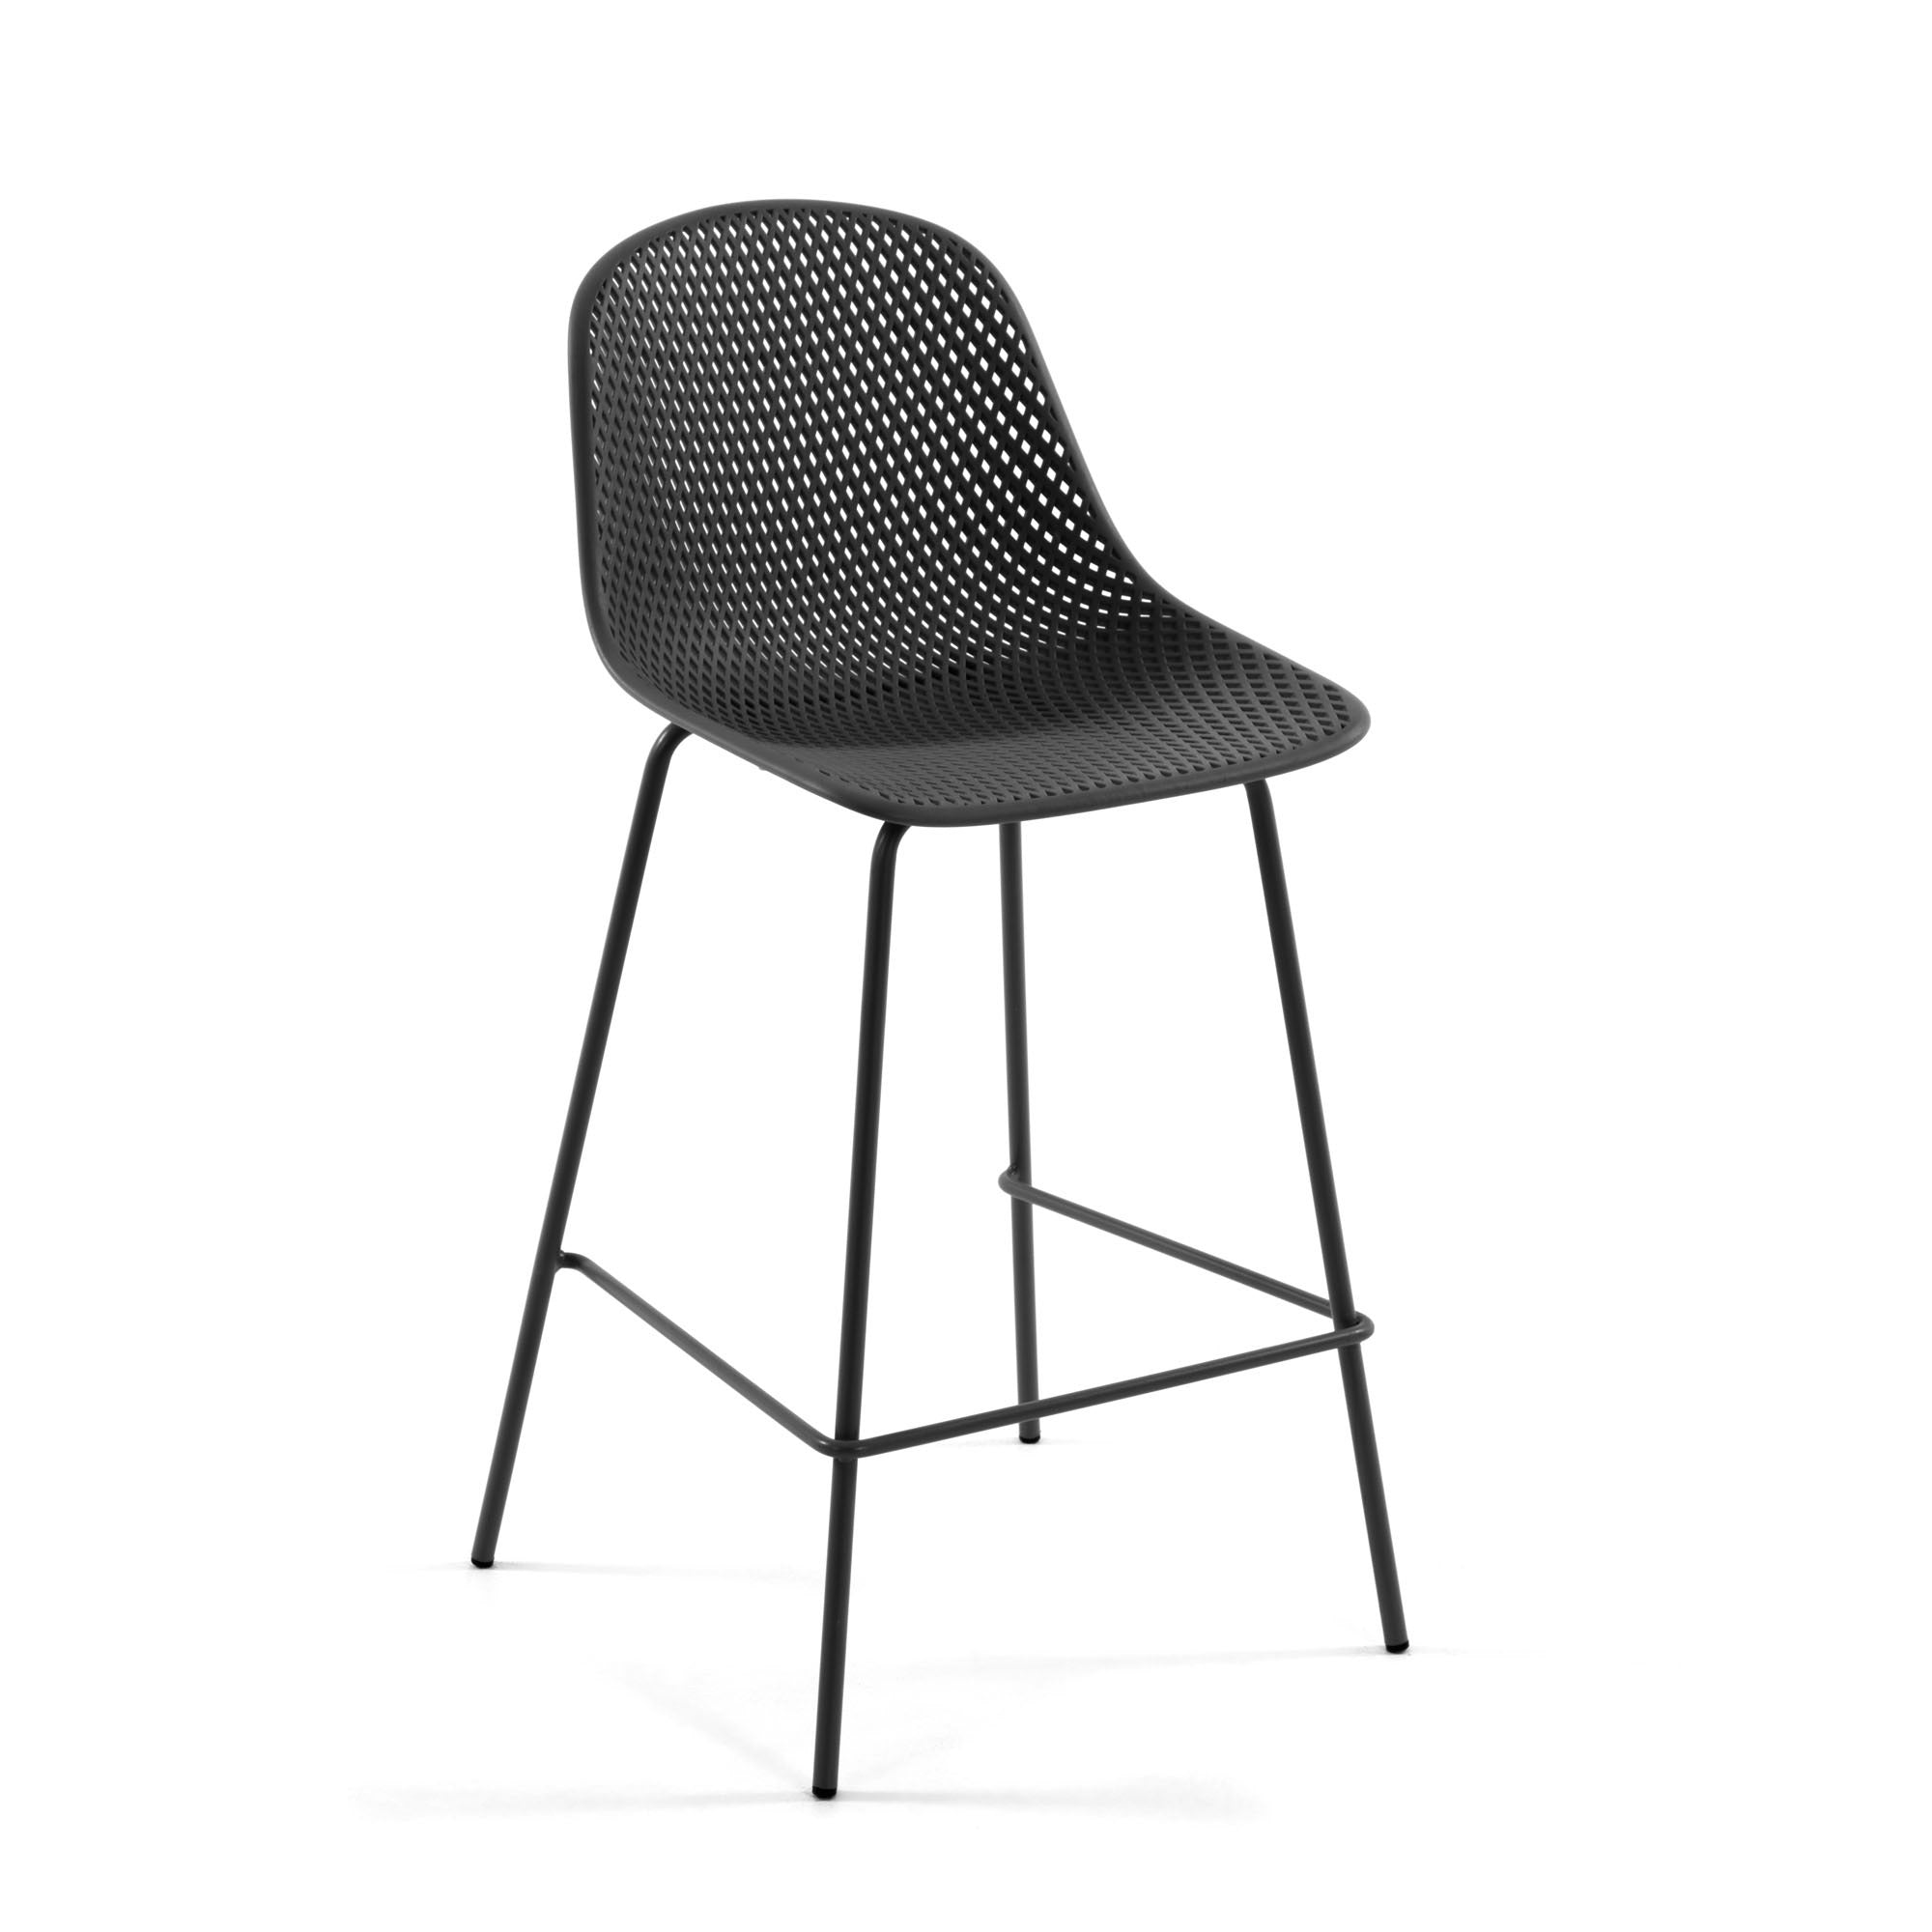 Luino Outdoor Stool Grey Height 75 cm, Barstool - Home-Buy Interiors